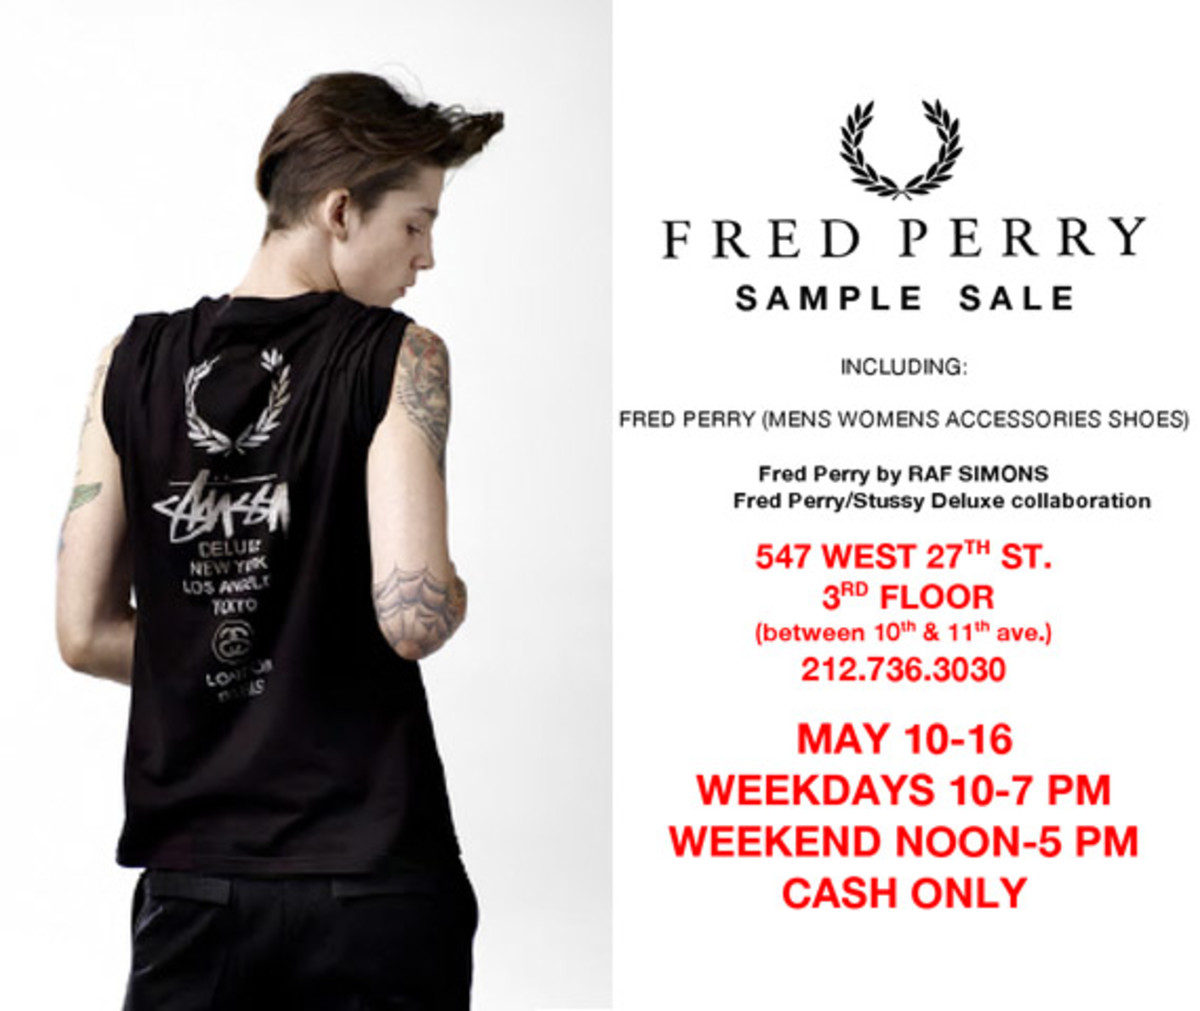 fred-perry-sample-sale-1